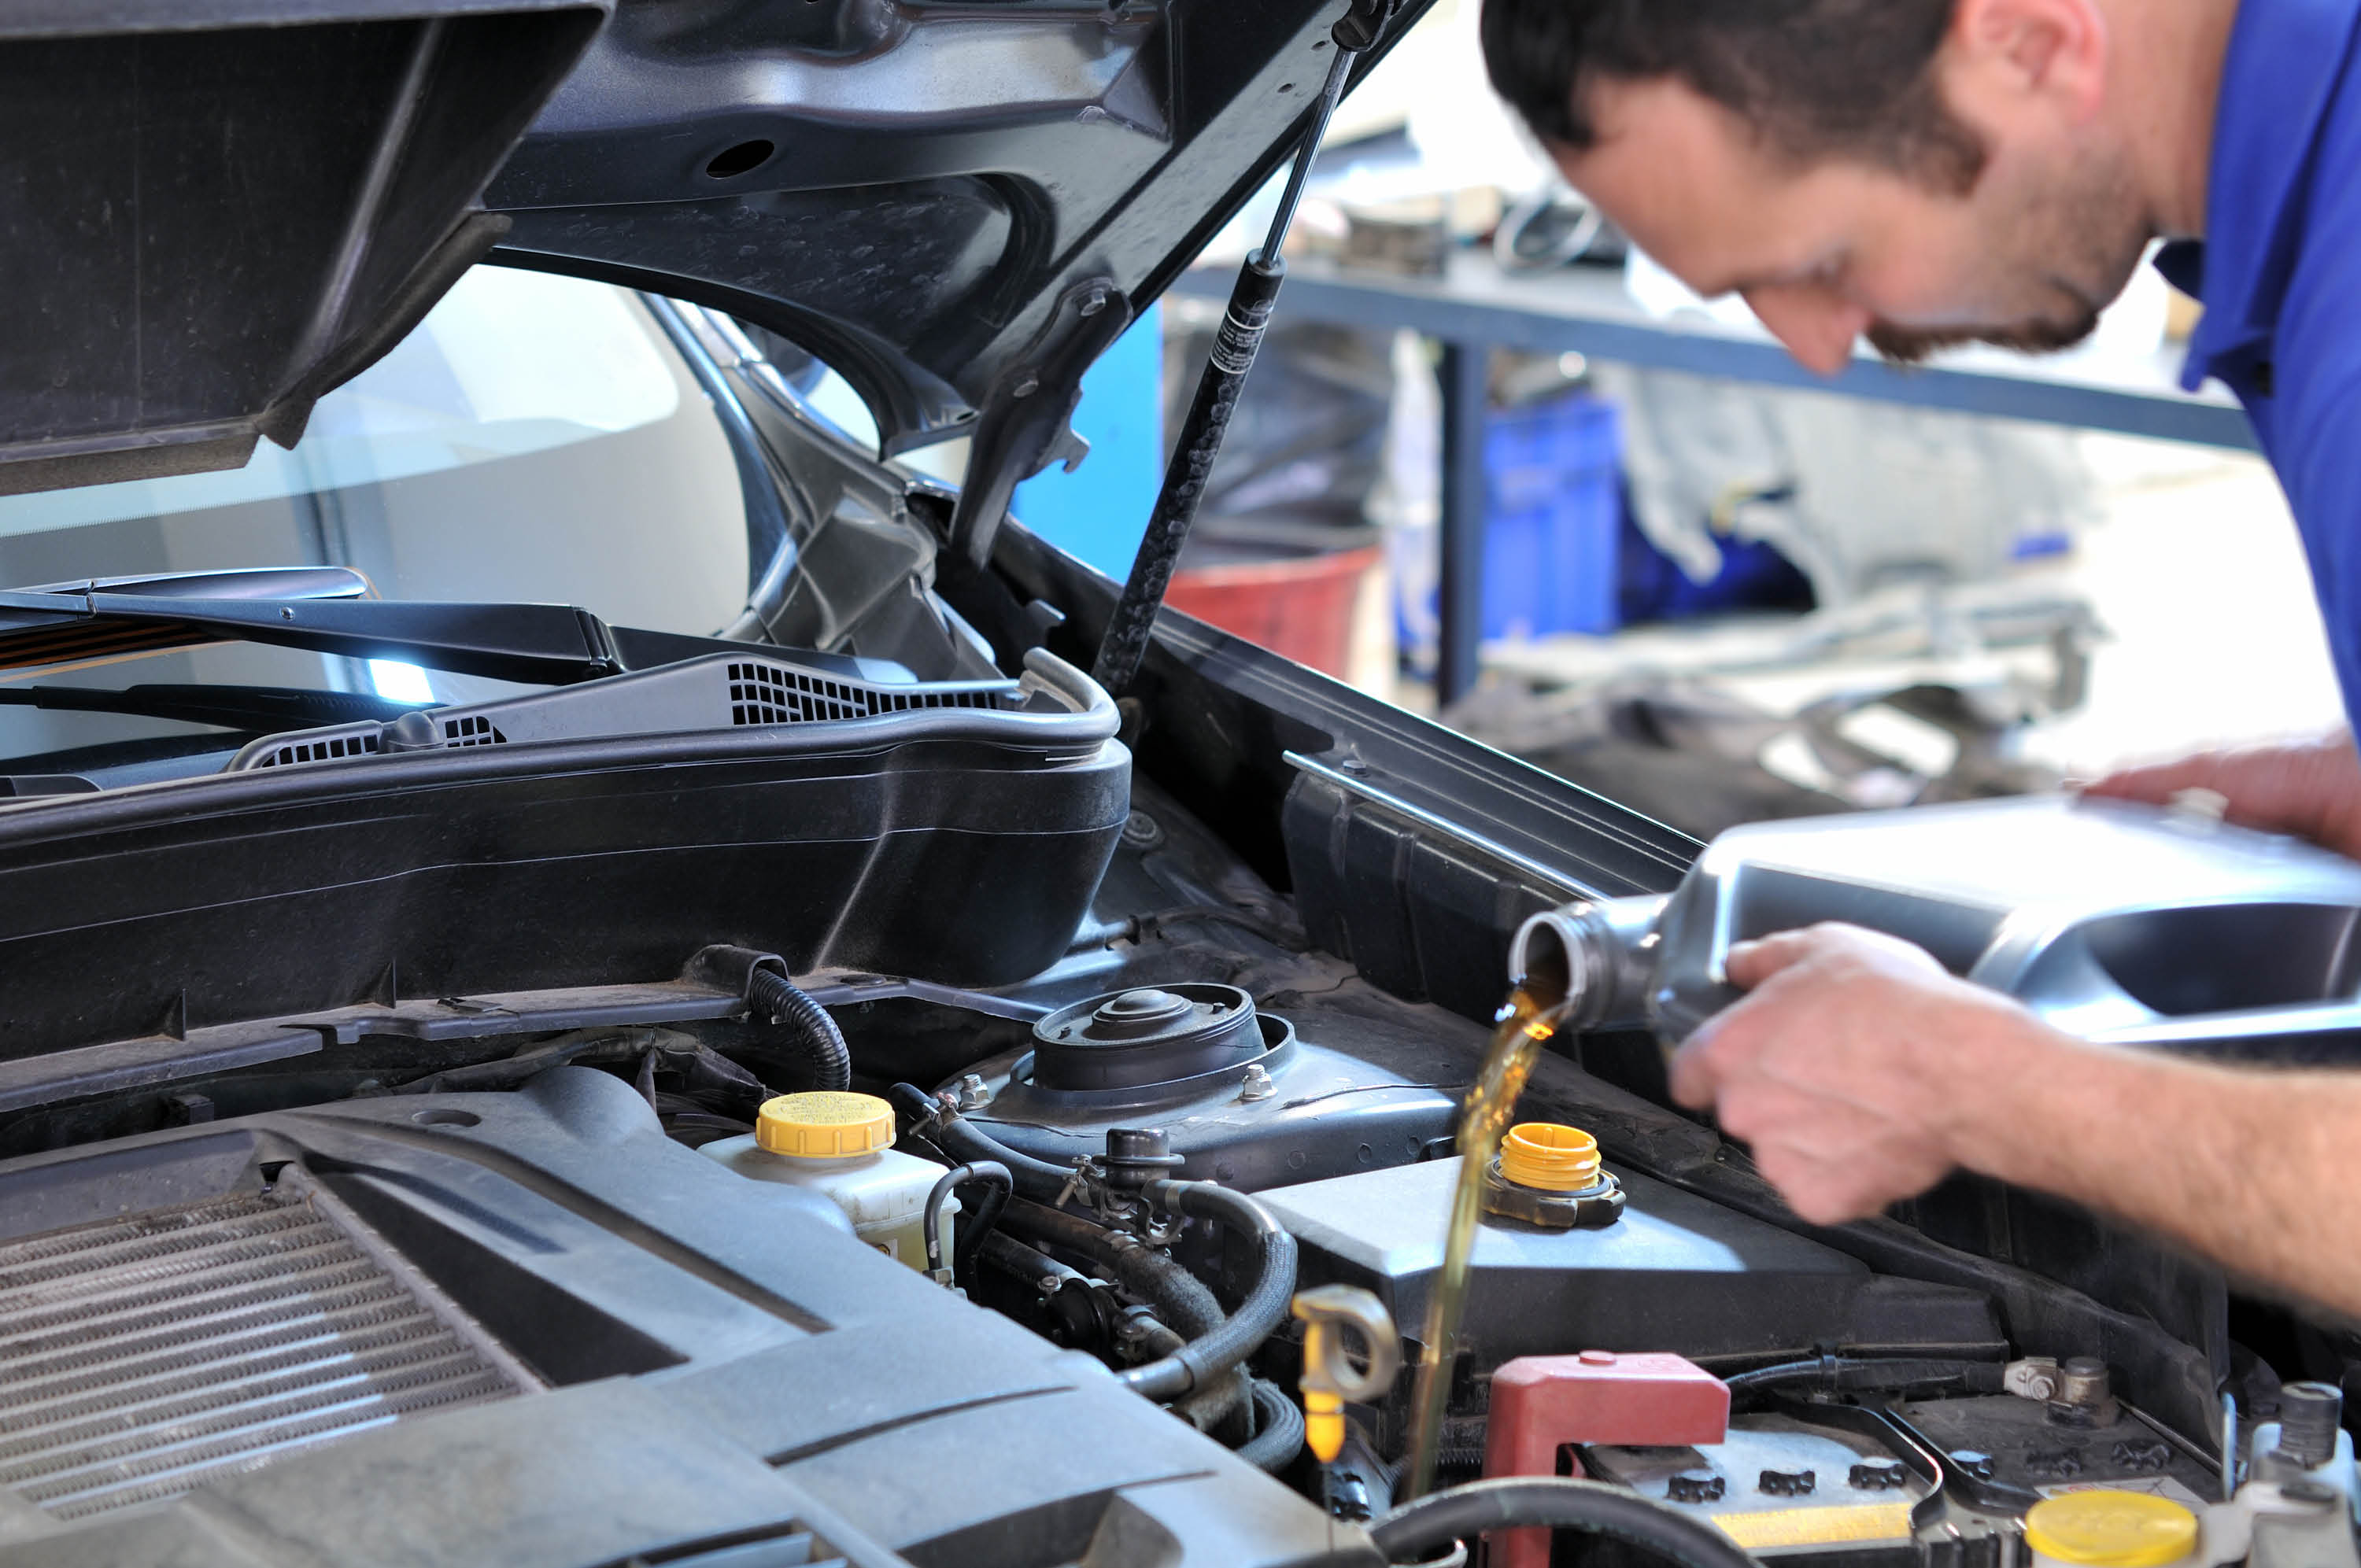 Oil-change, tune-up, engine and transmission repair, brake service, electrical service, computerized tire balance